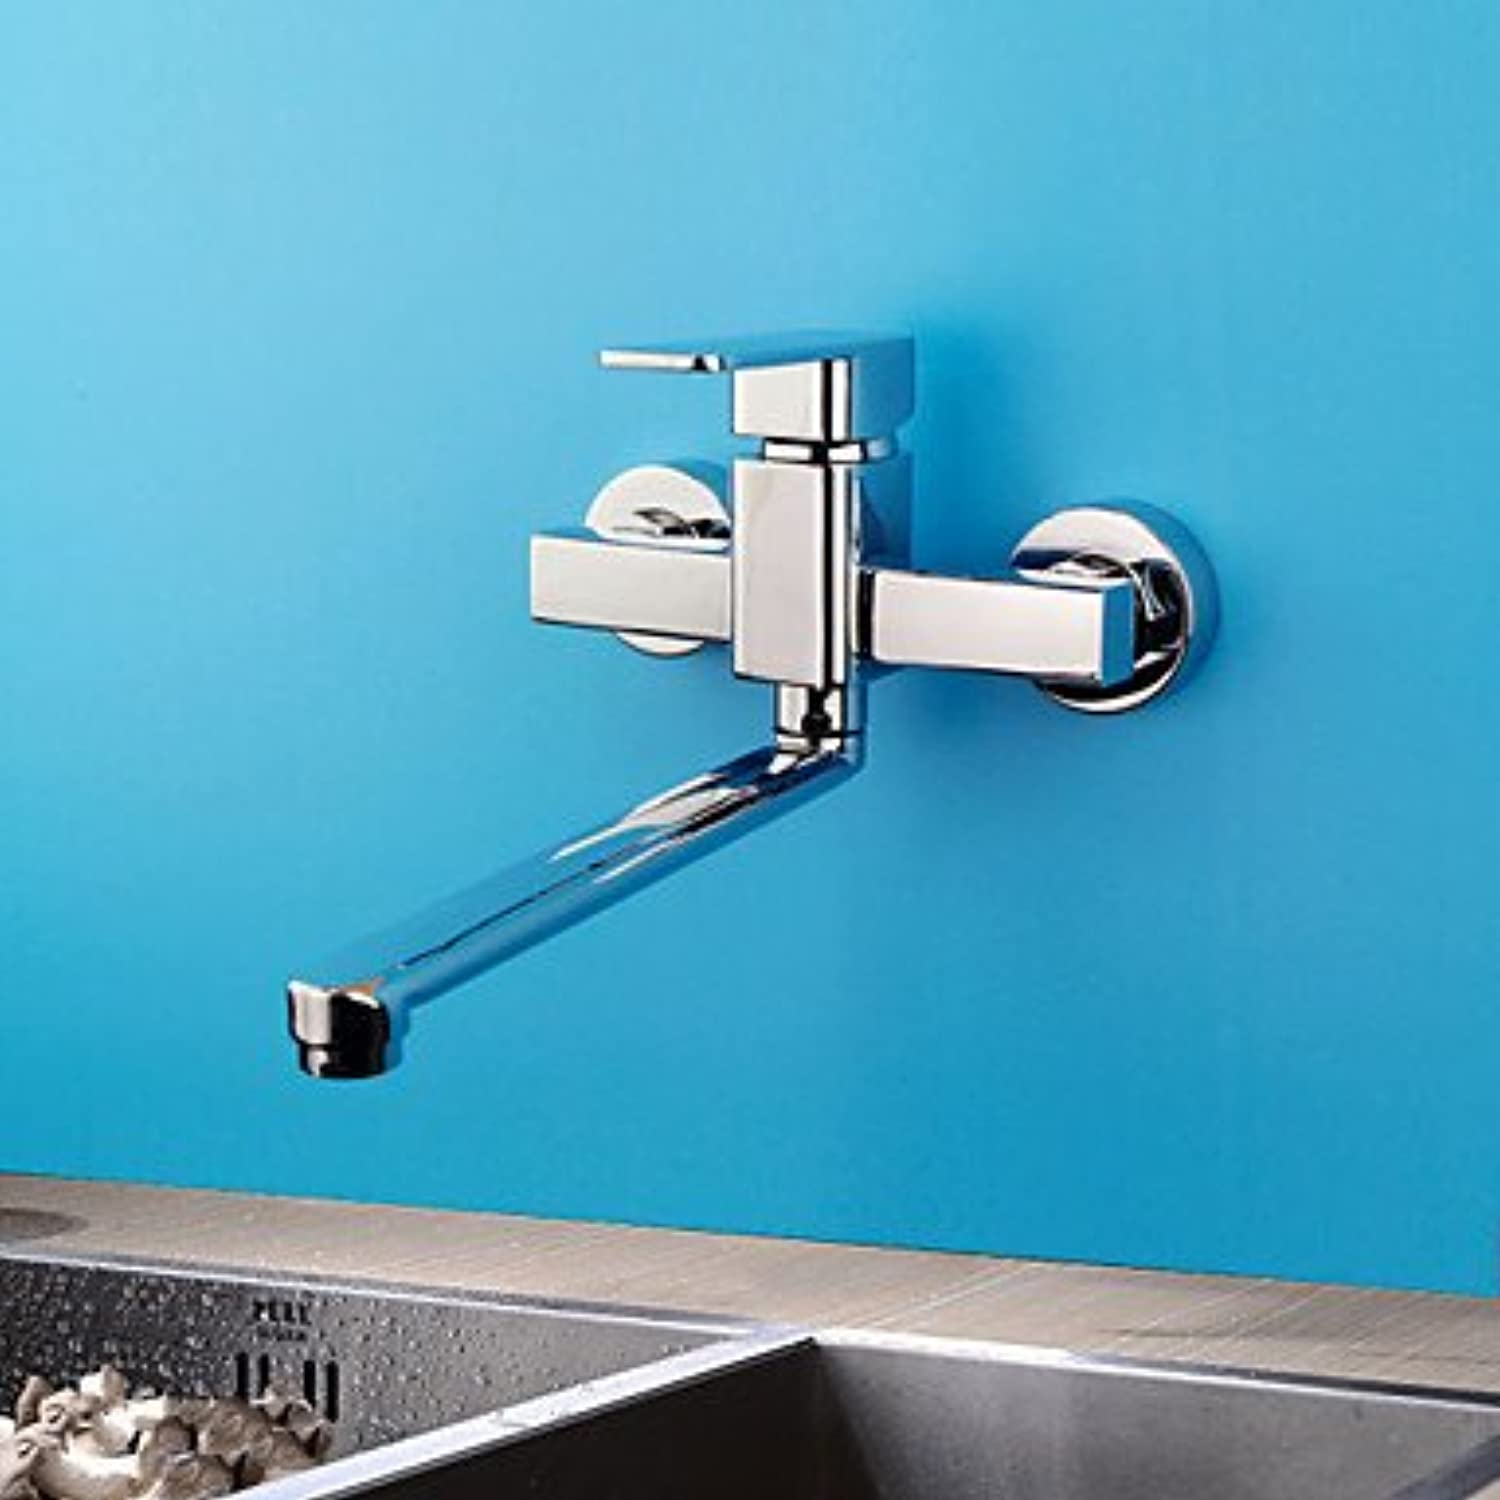 Von YIRUI Single Cold Wallmouunt Kitchen Faucet, sliver